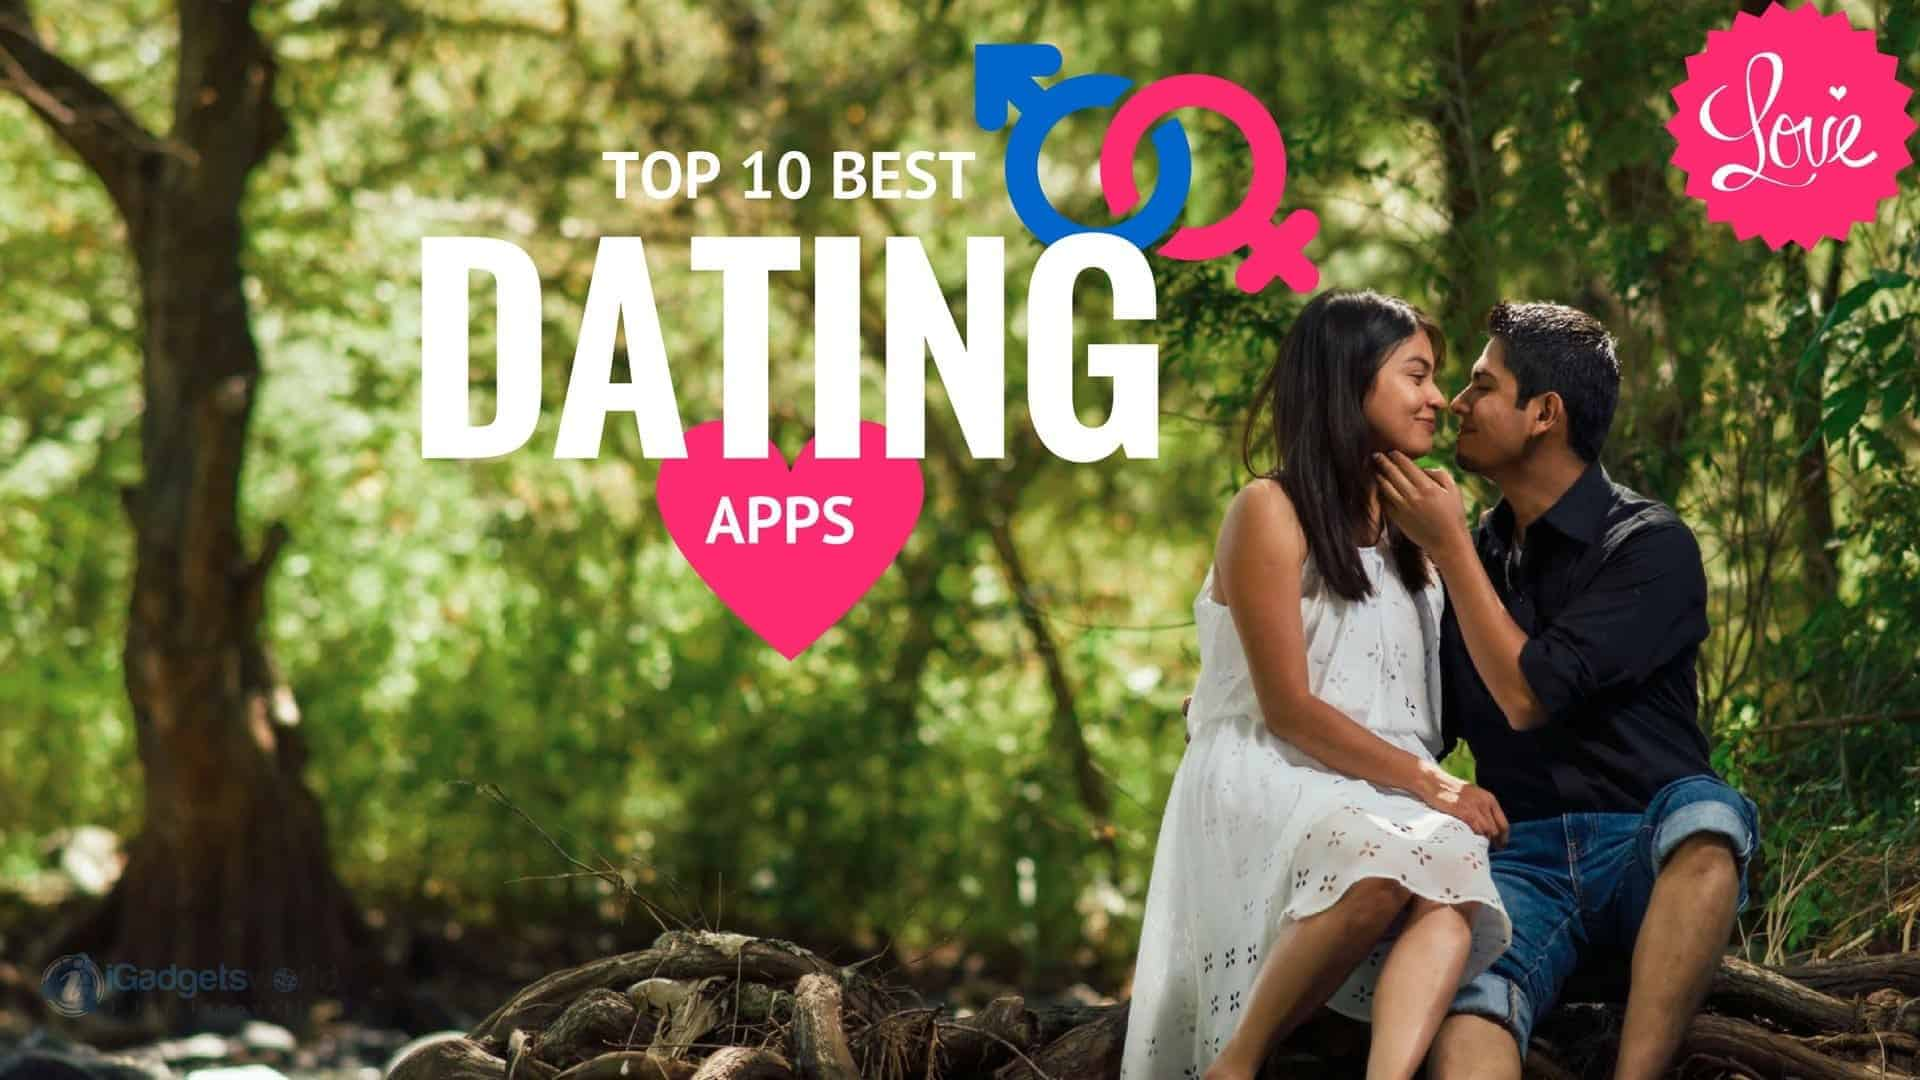 Who owns the major dating apps